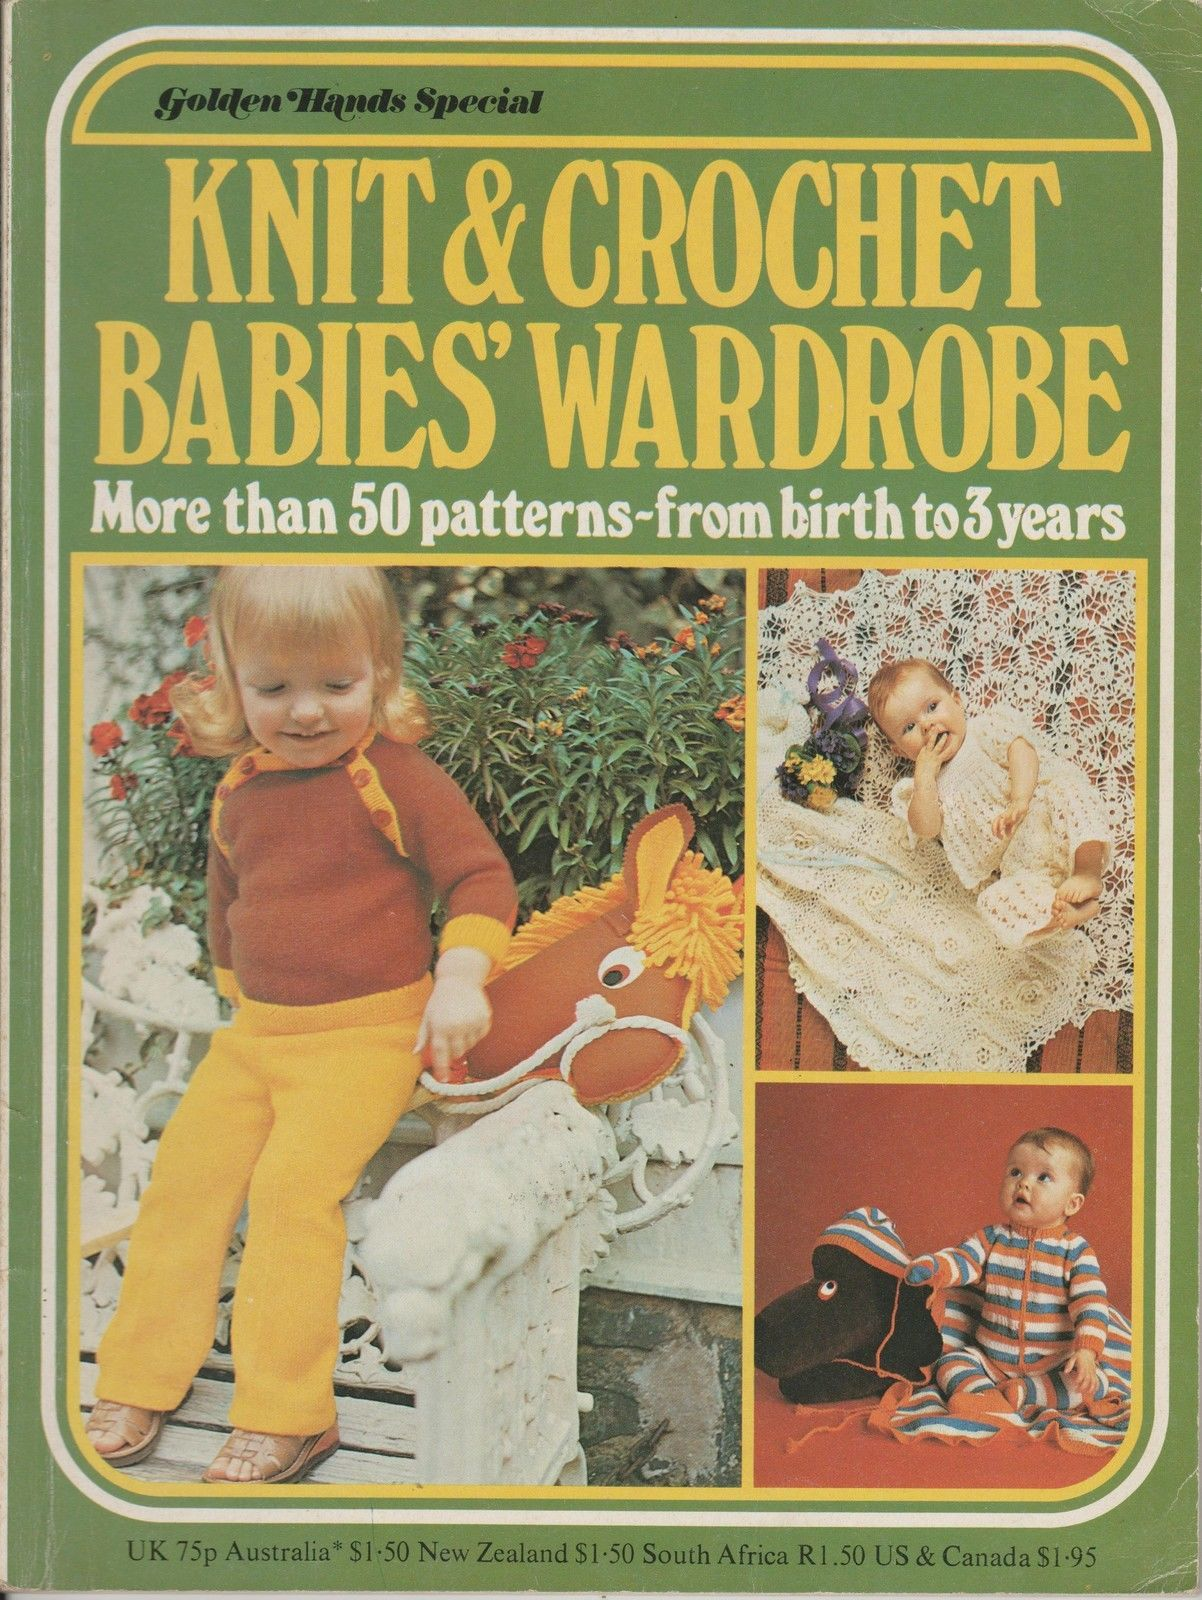 Vintage golden hands baby toddler knitting crochet pattern book 50 vintage golden hands baby toddler knitting crochet pattern book 50 patterns ebay bankloansurffo Image collections